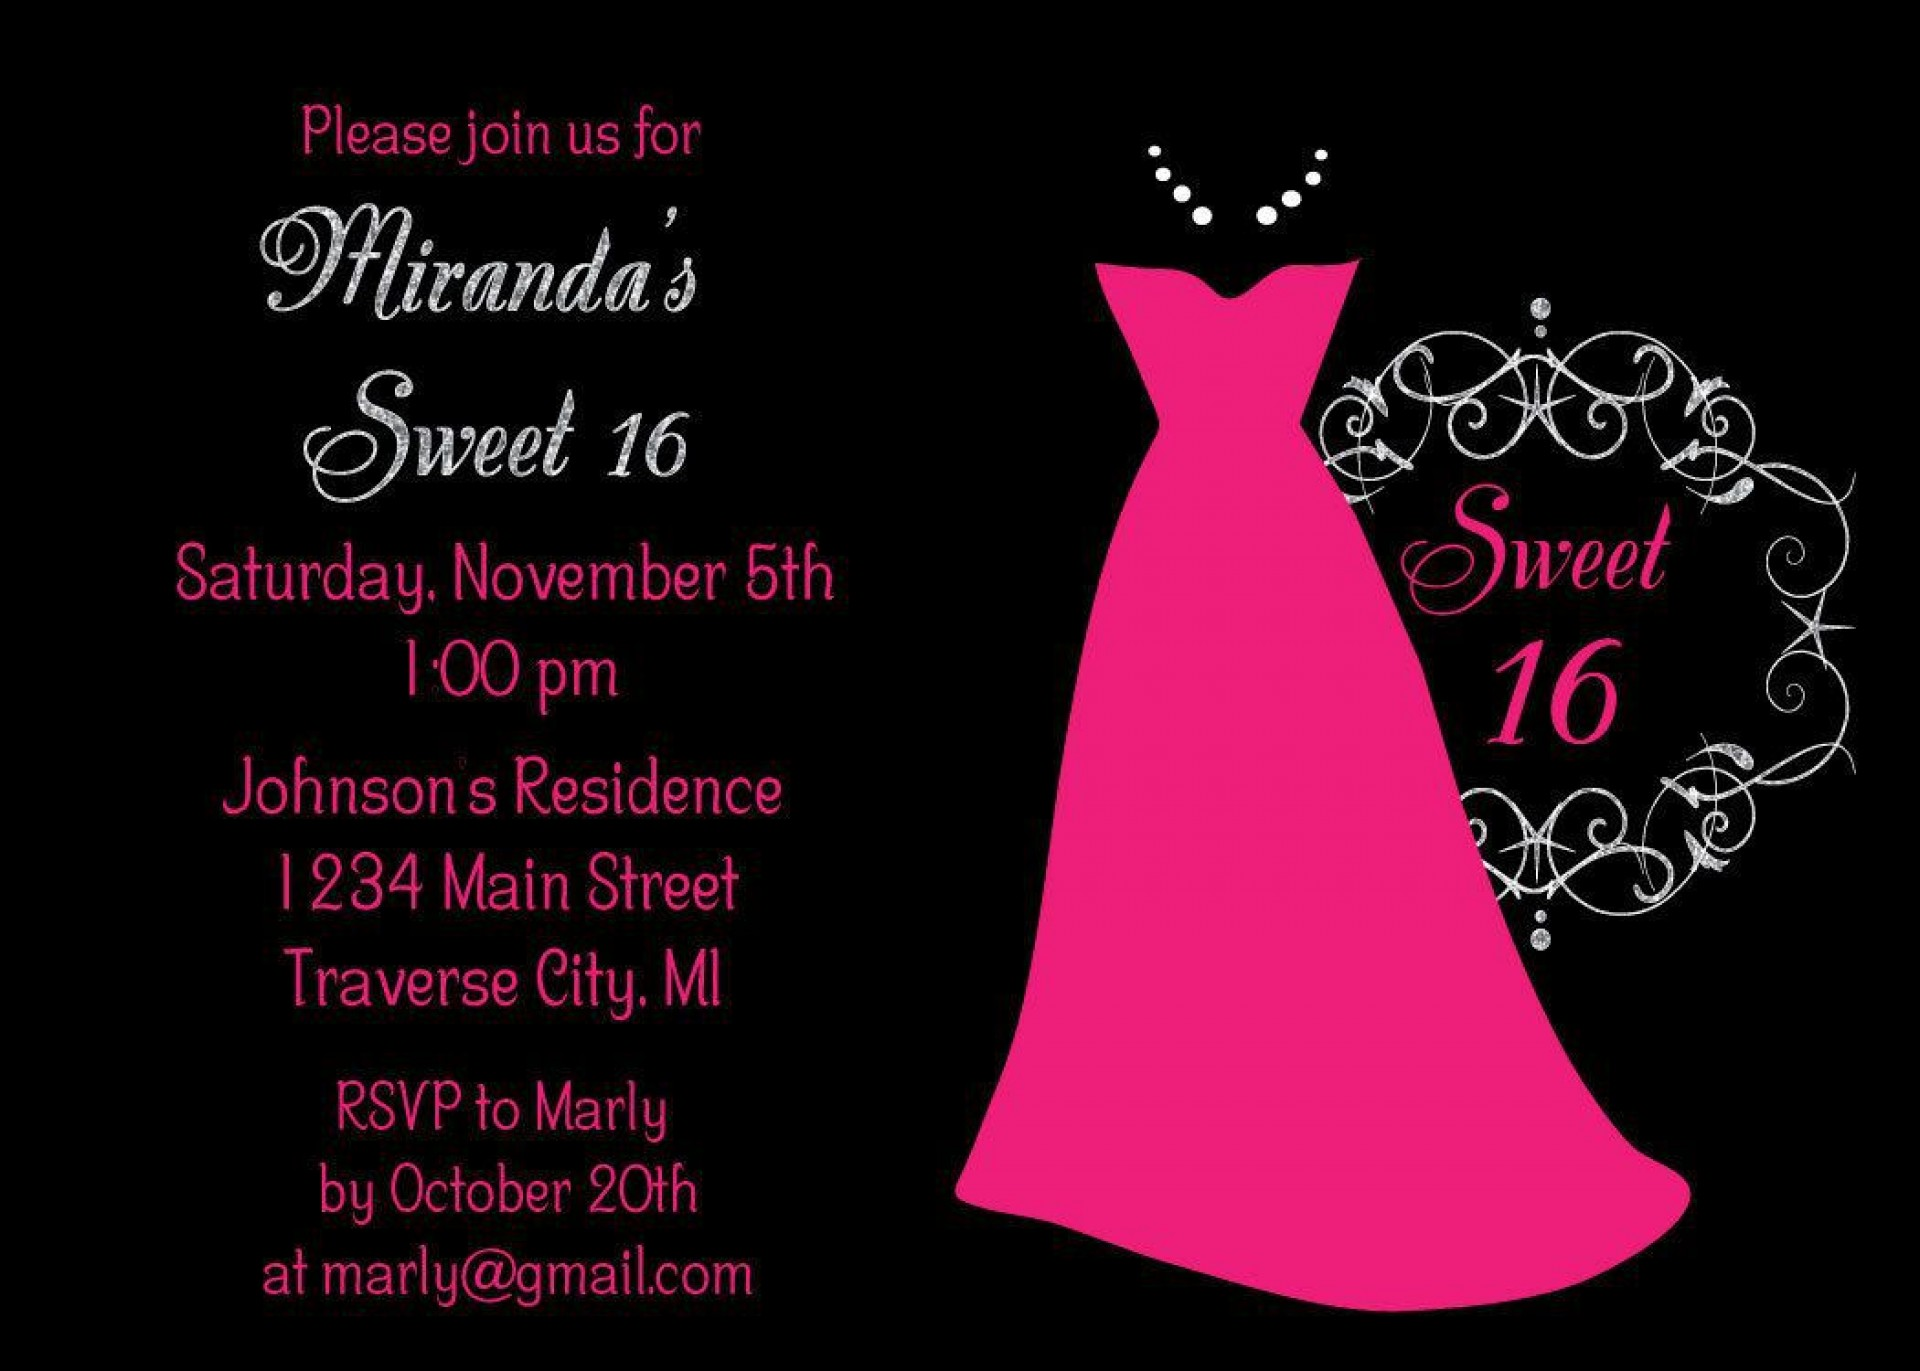 006 Surprising Sweet 16 Invite Template Image  Templates Surprise Party Invitation Birthday Free 16th1920